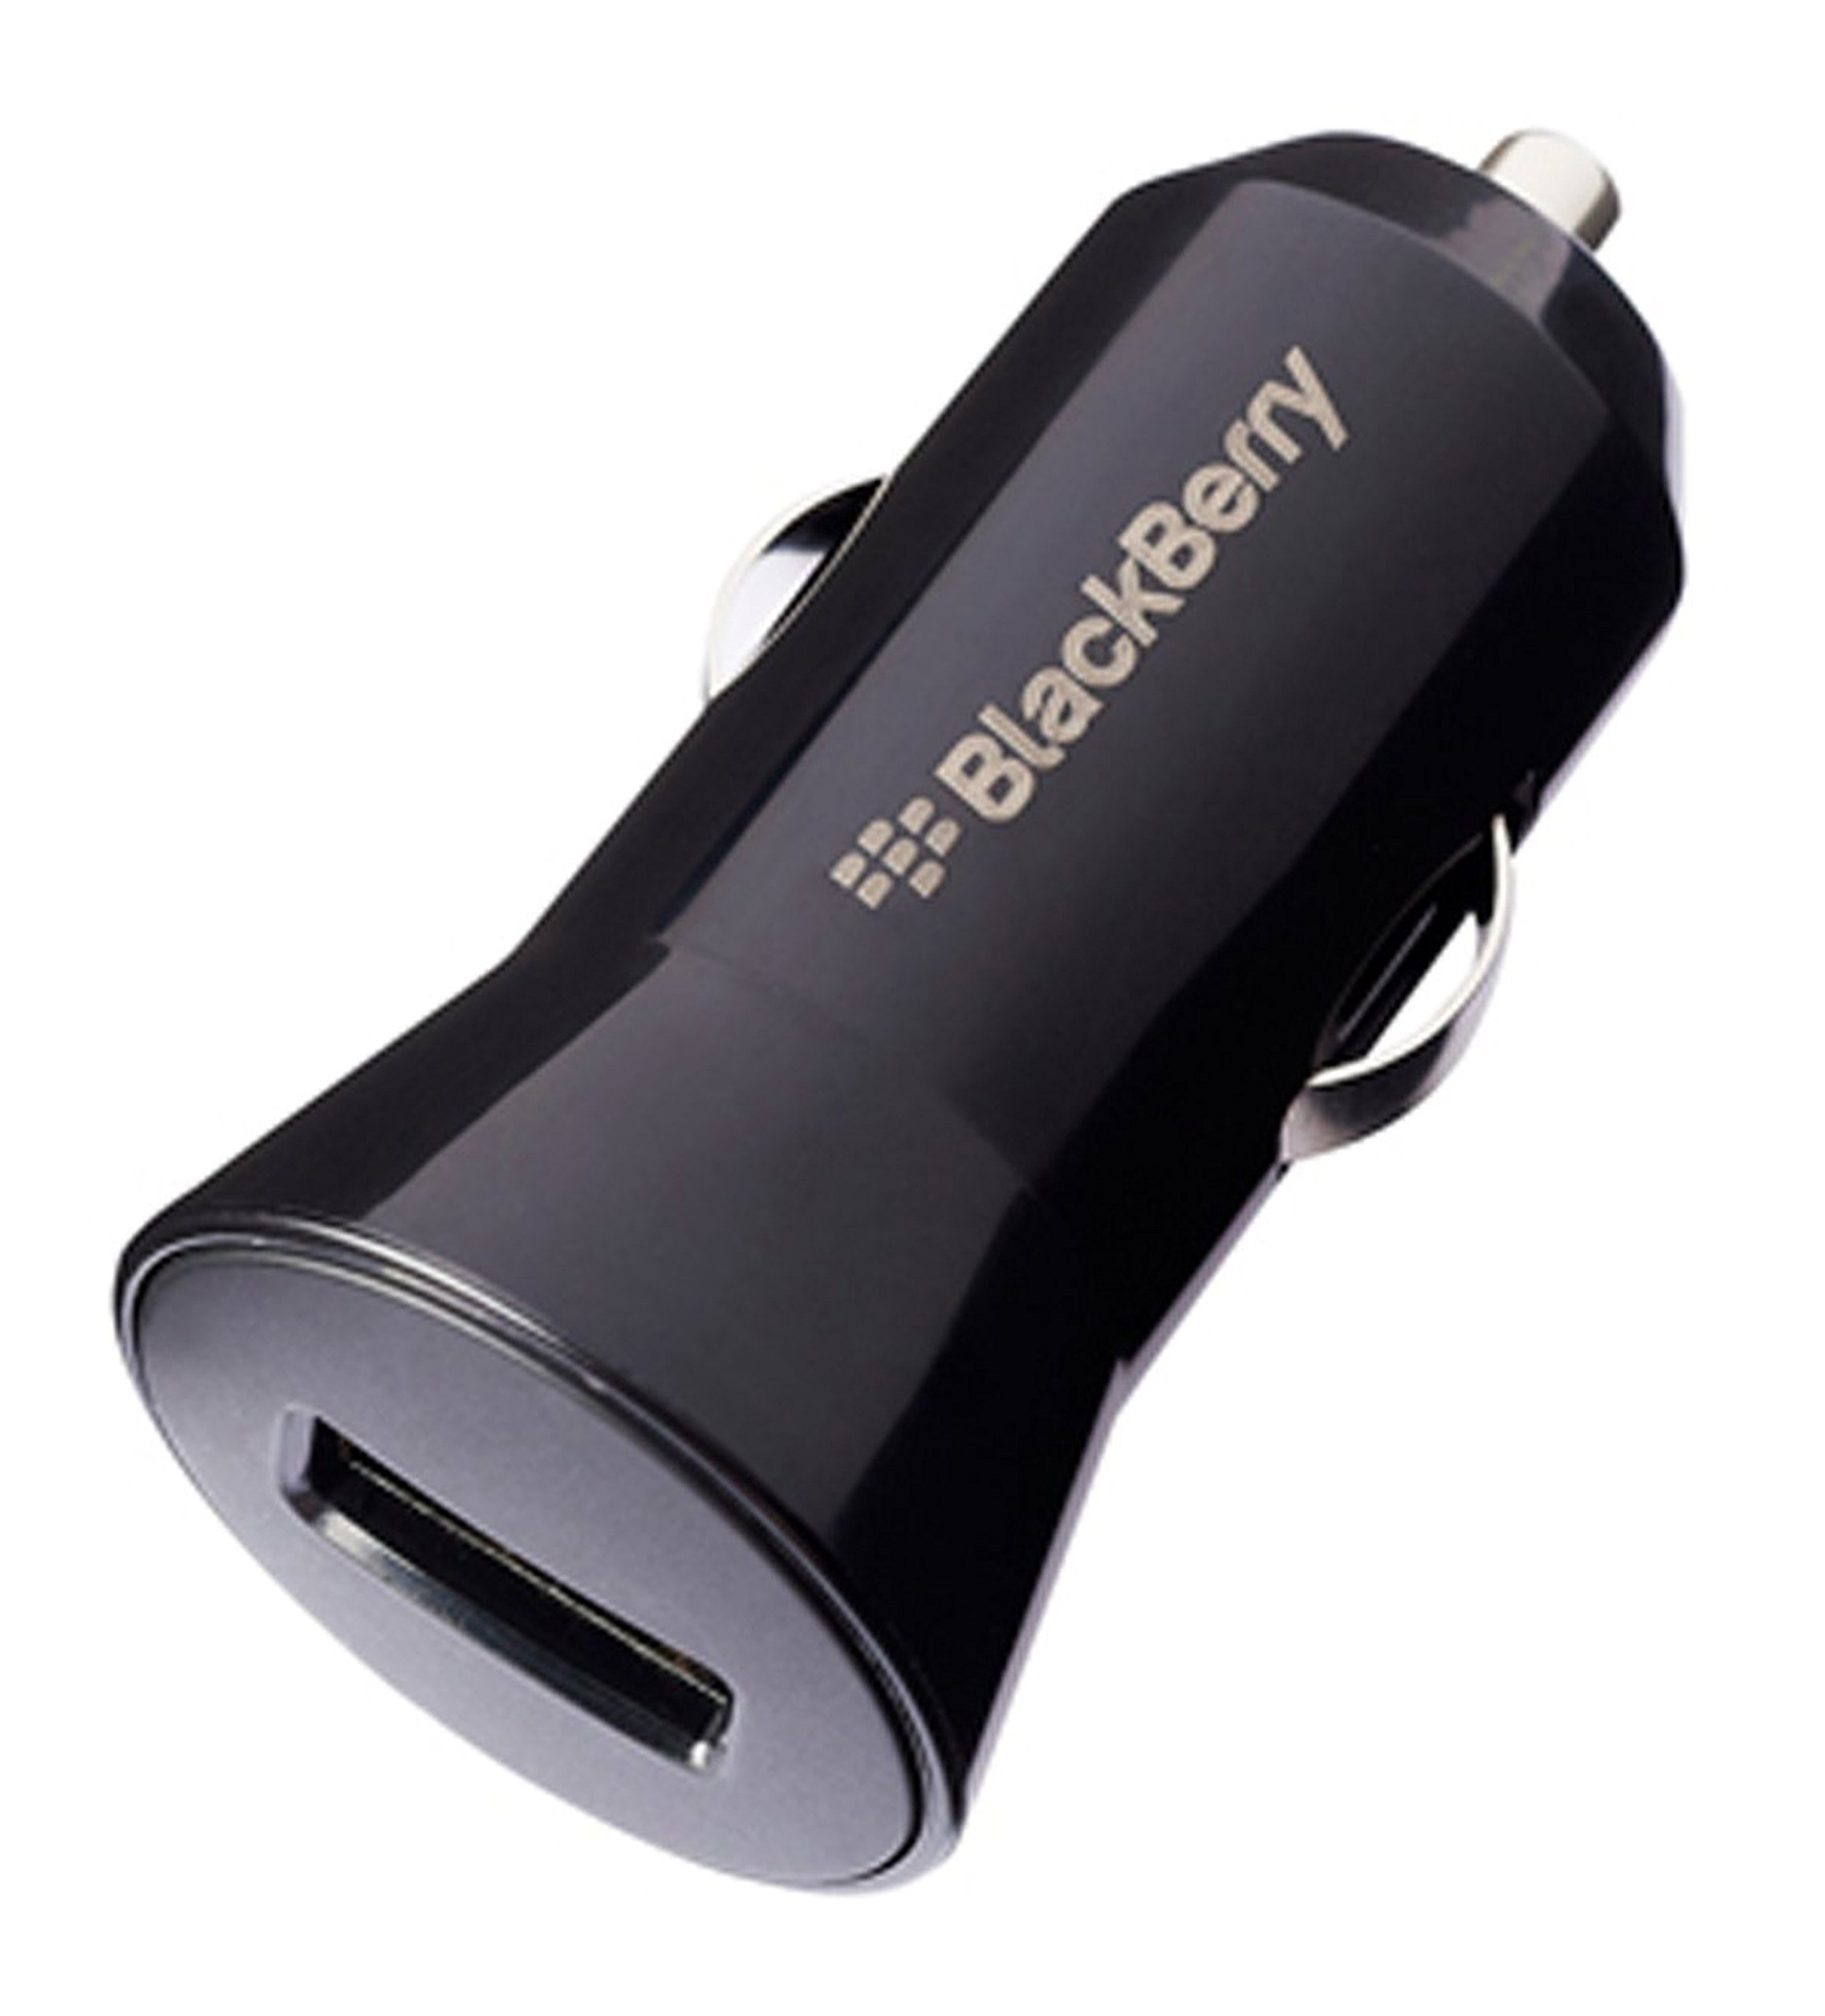 BlackBerry-ACC-48157-001-Auto-Black-mobile-device-charger-mobile-device-Q4V